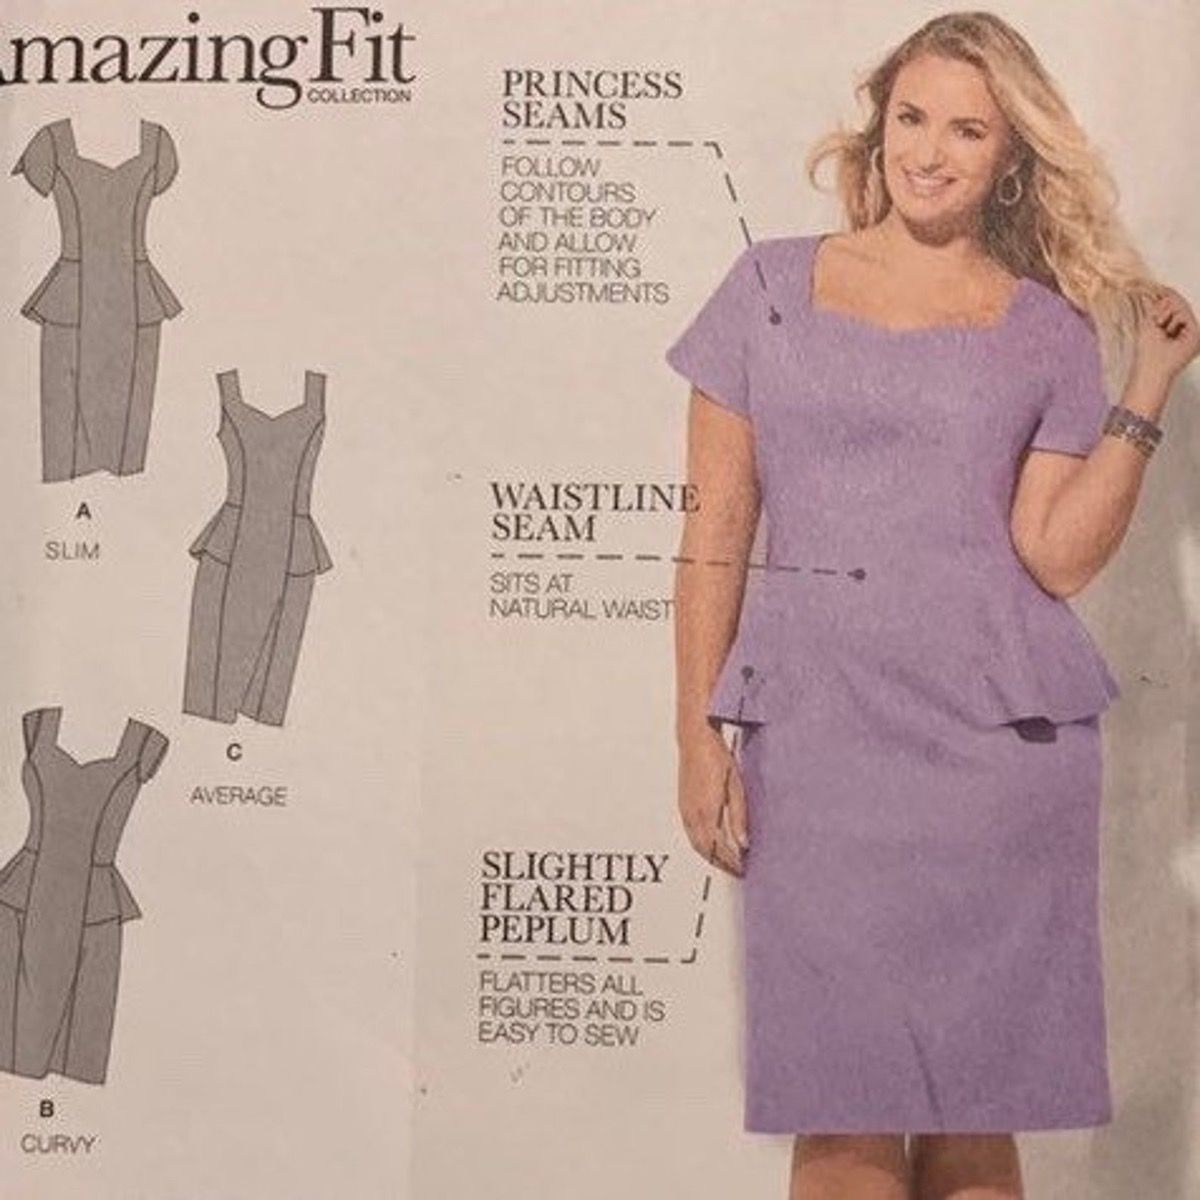 Remnant - Simplicity Sewing Patterns - BB (46 - 54) - End of Line